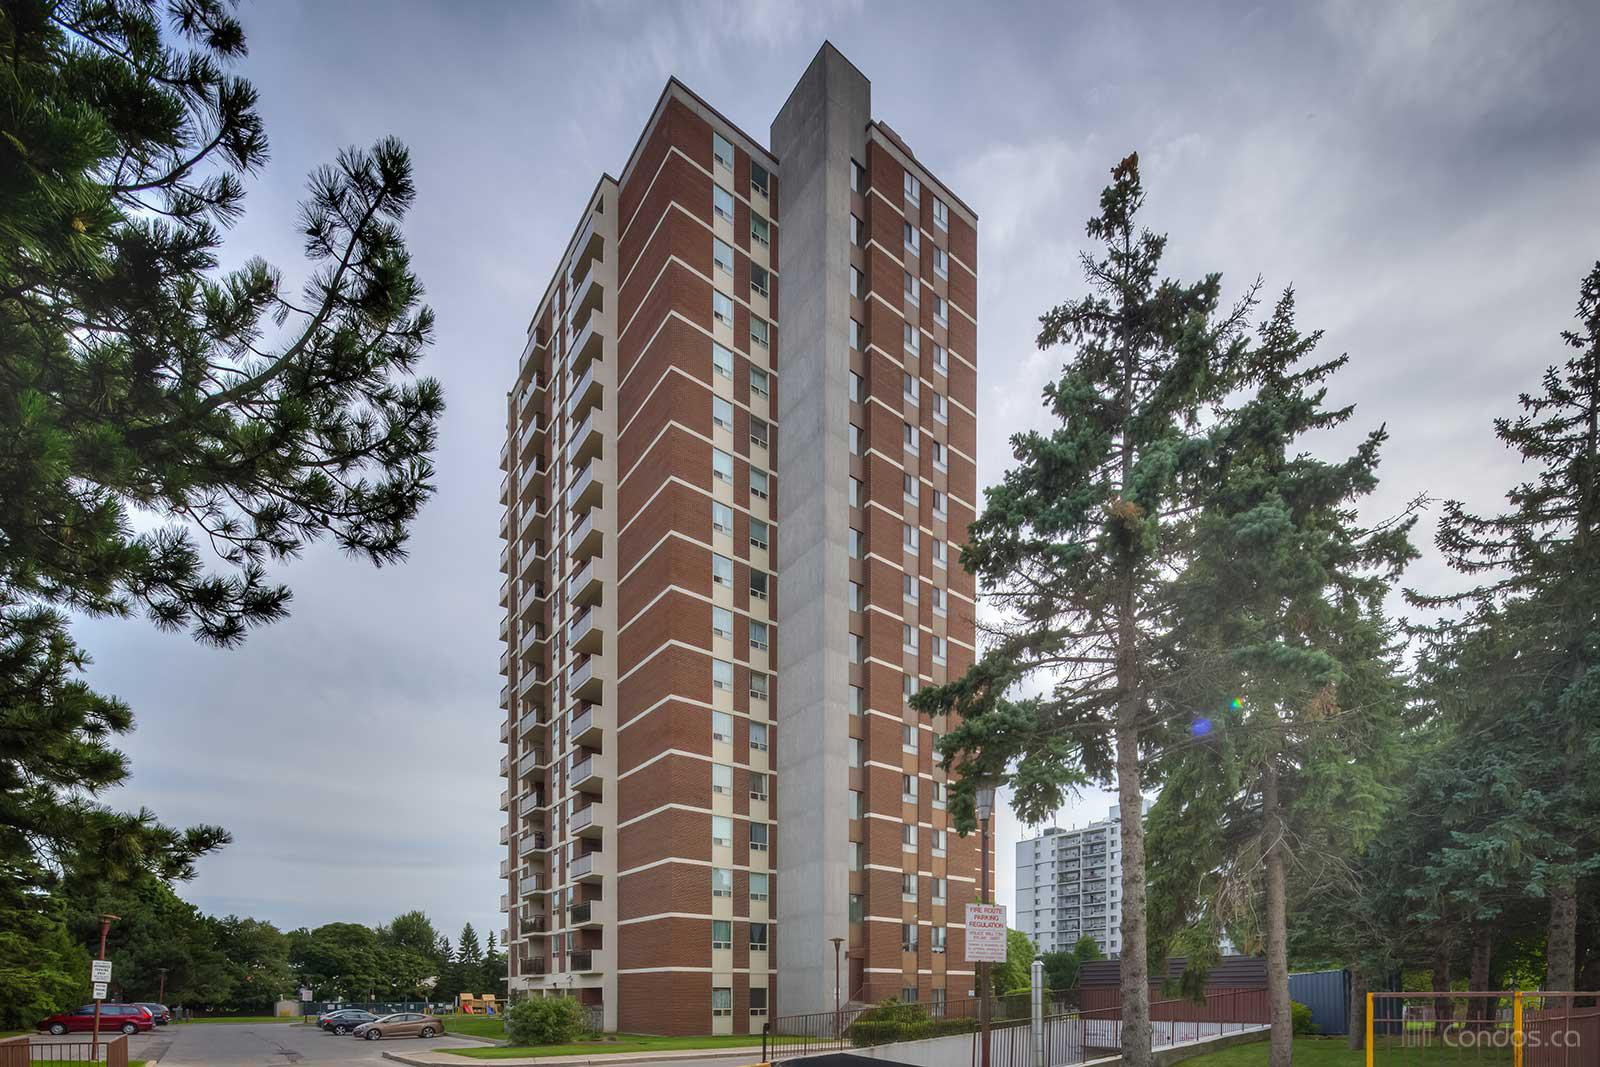 McCowan Place at 121 Trudelle St, Toronto 1